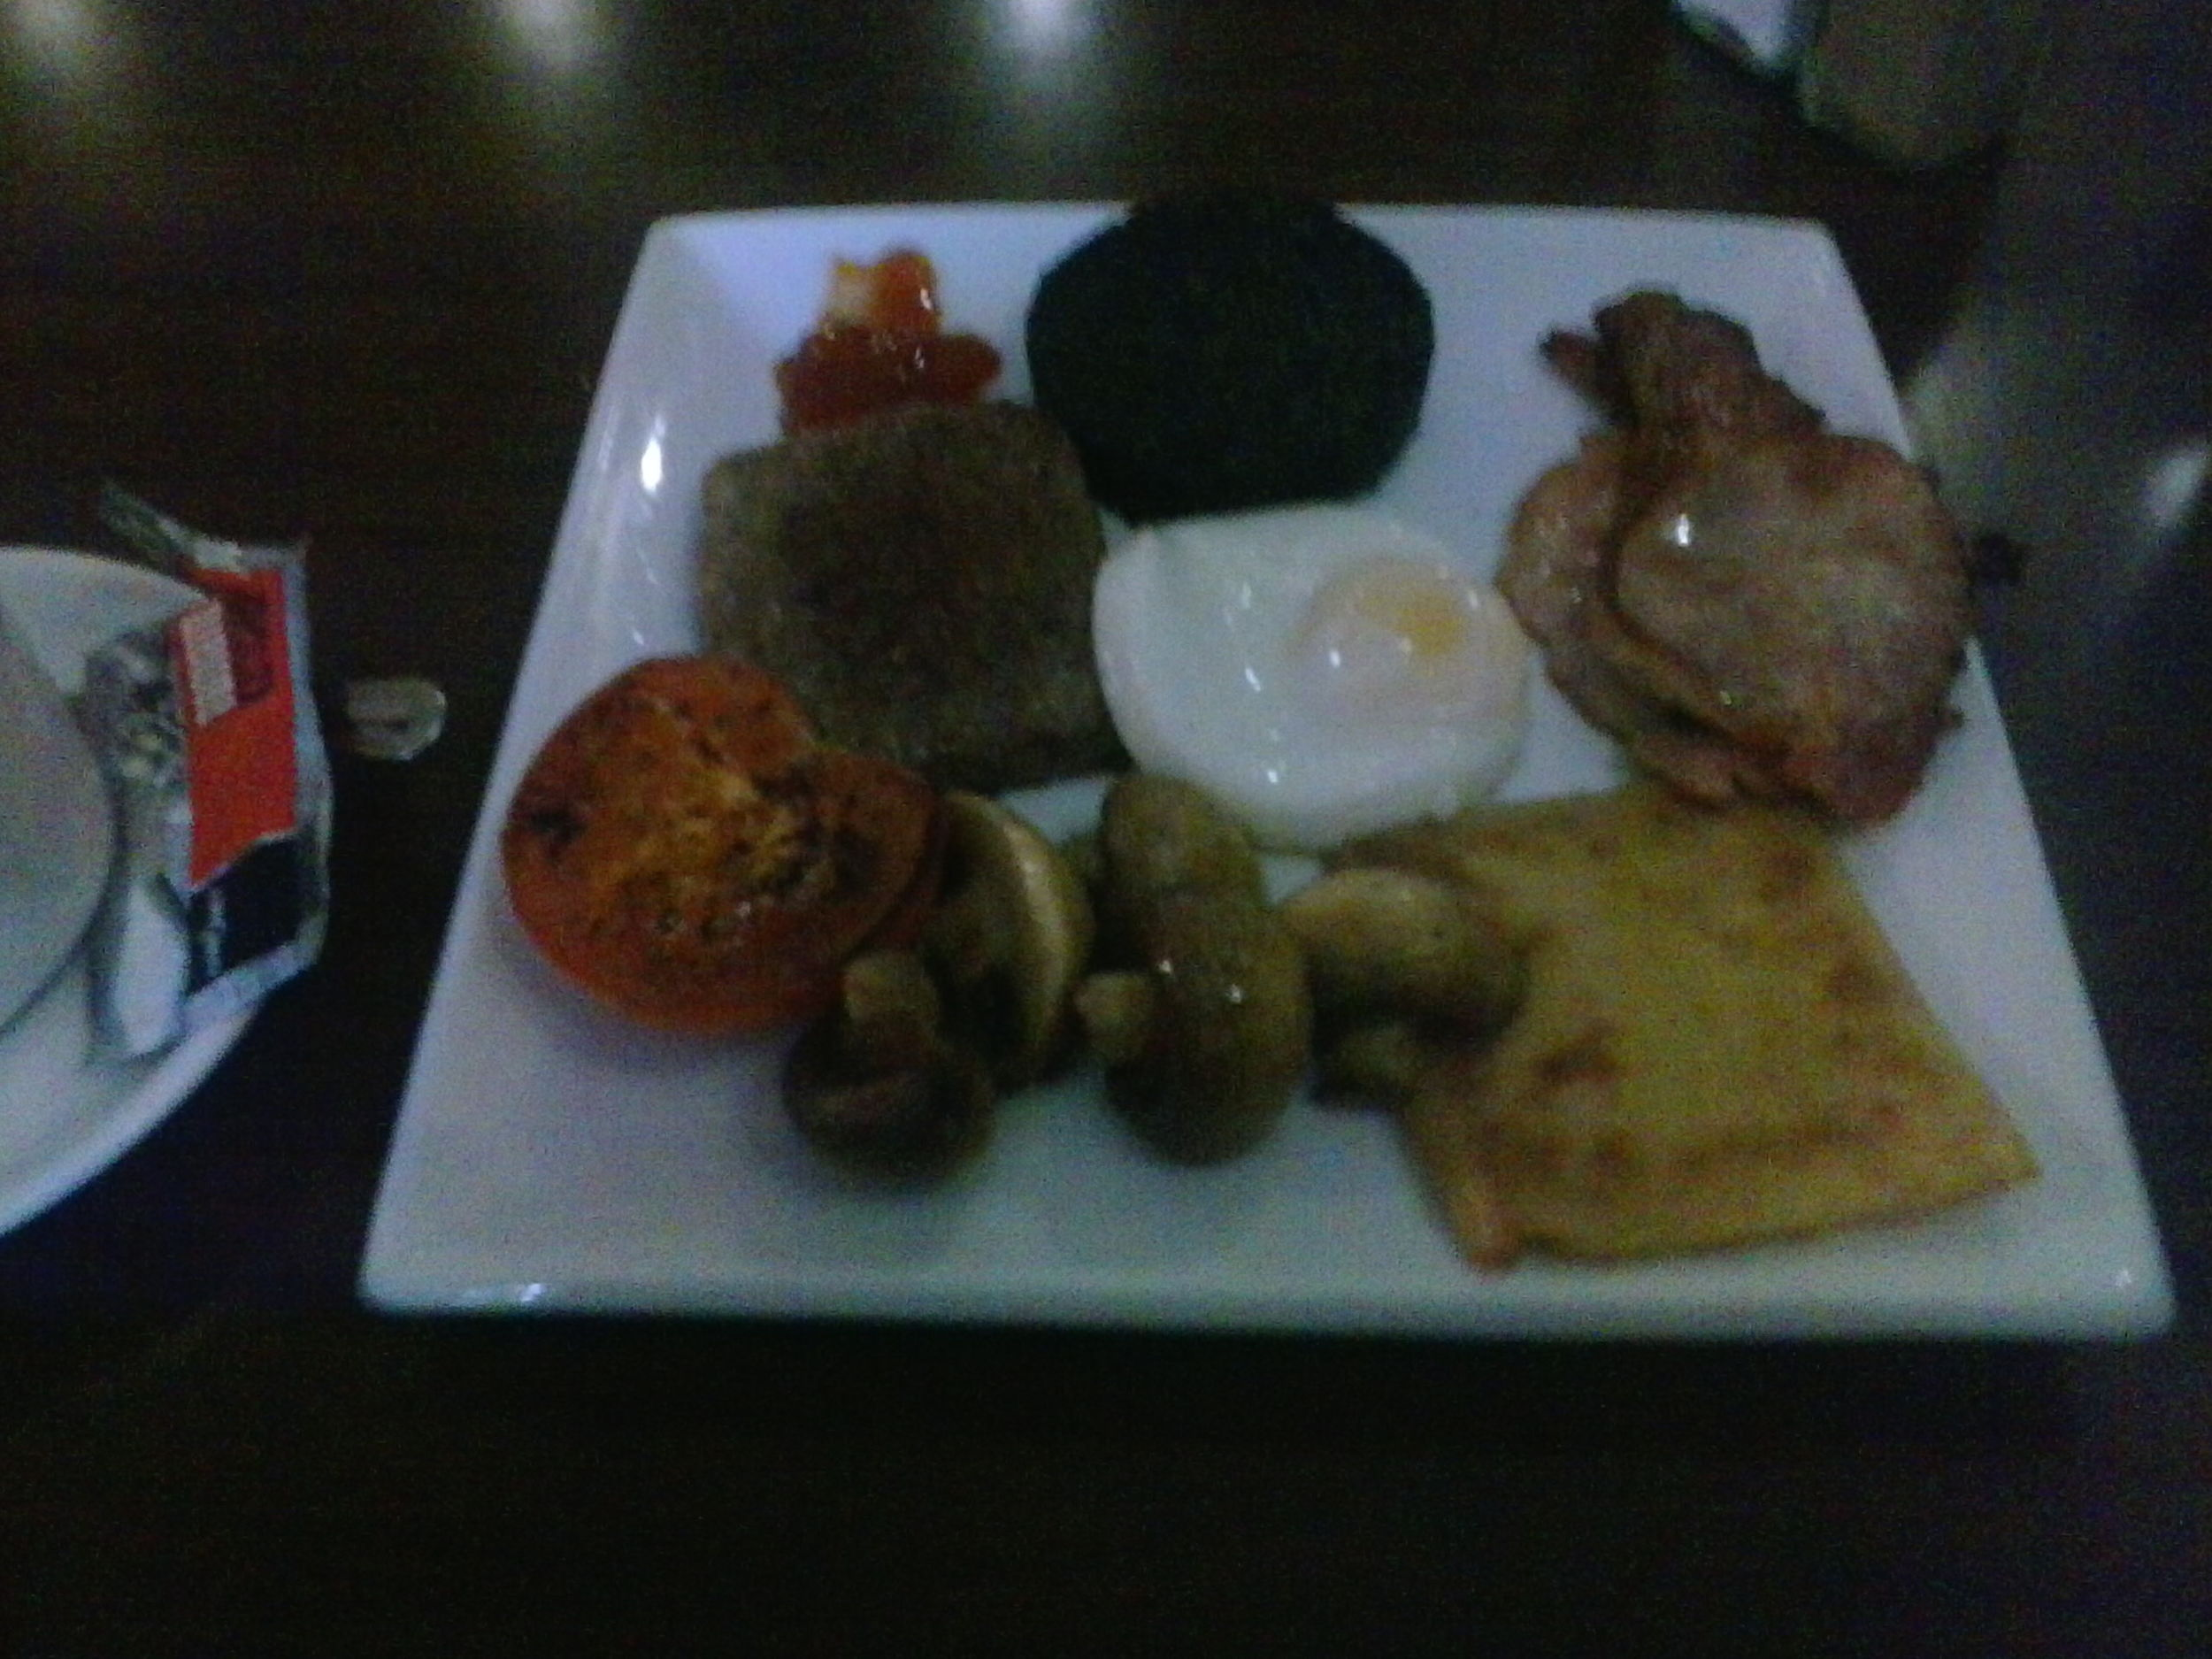 A well deserved all day Scottish breakfast after getting back to Balloch